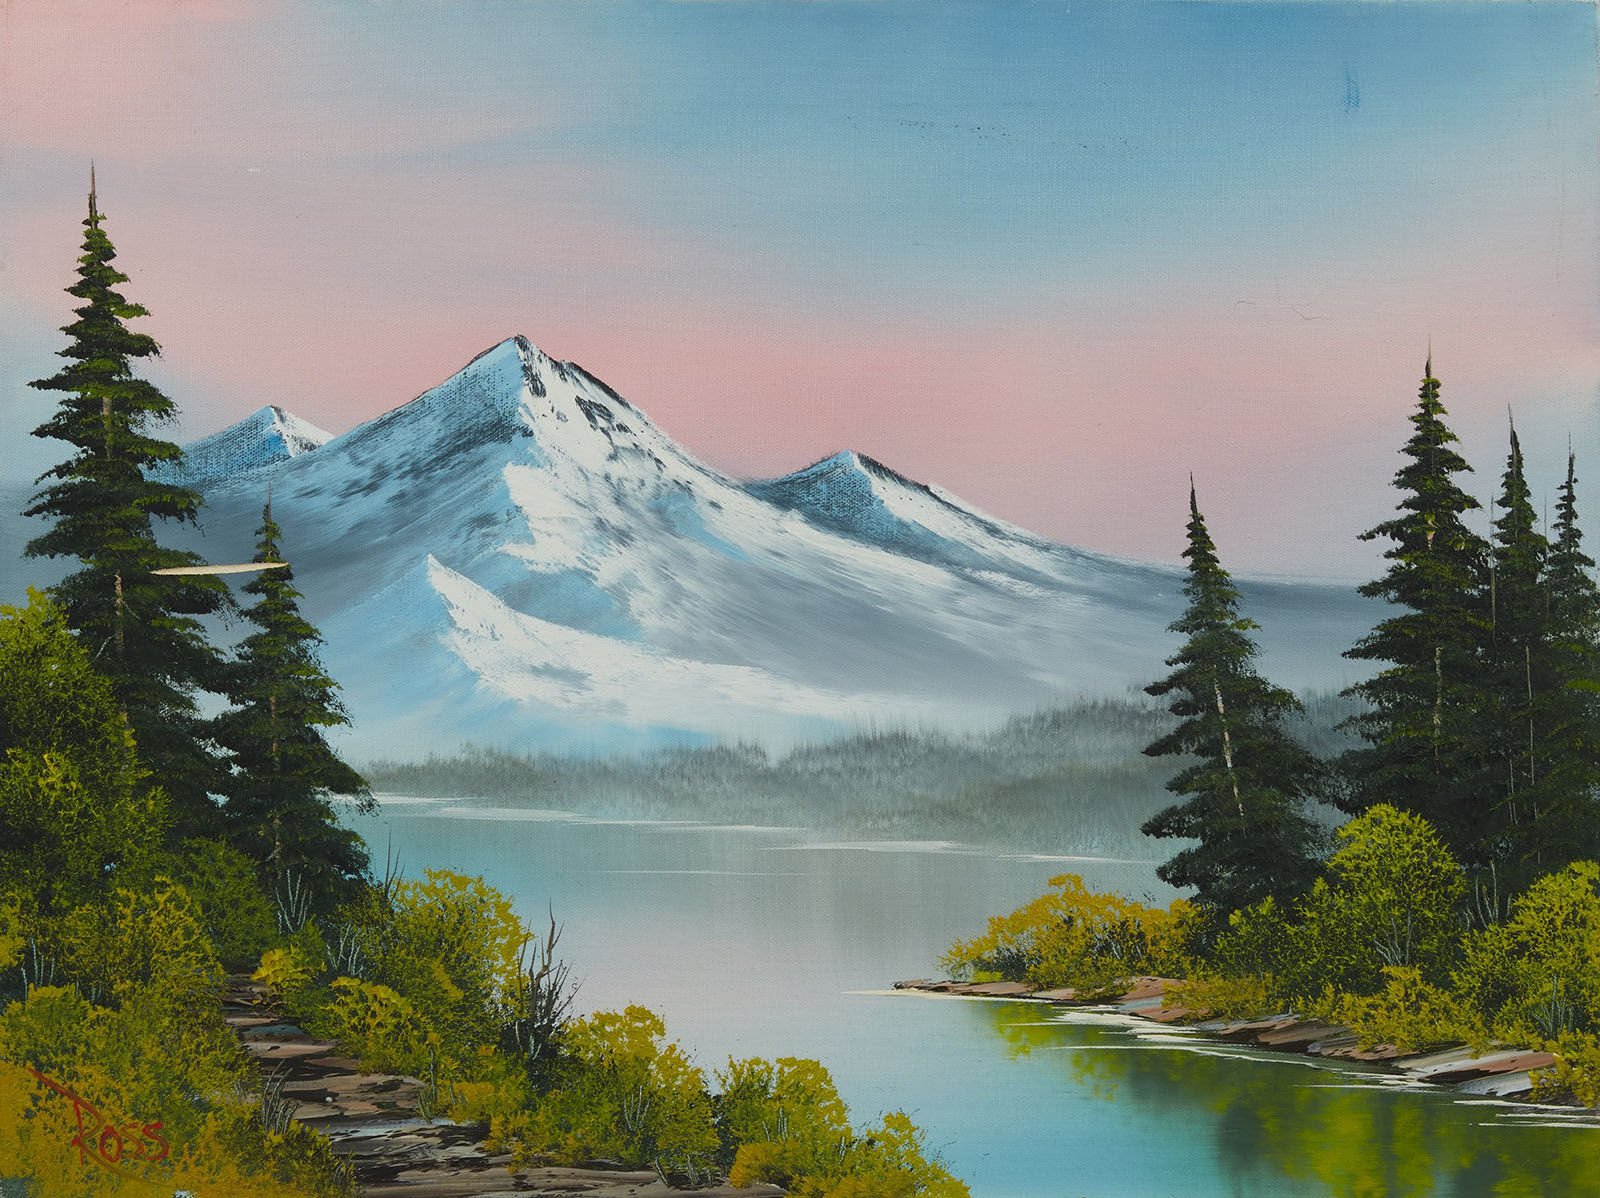 Bob Ross, Forest Hills, Original Oil Painting, 1989. Image Used with Permission © Modern Artifact.